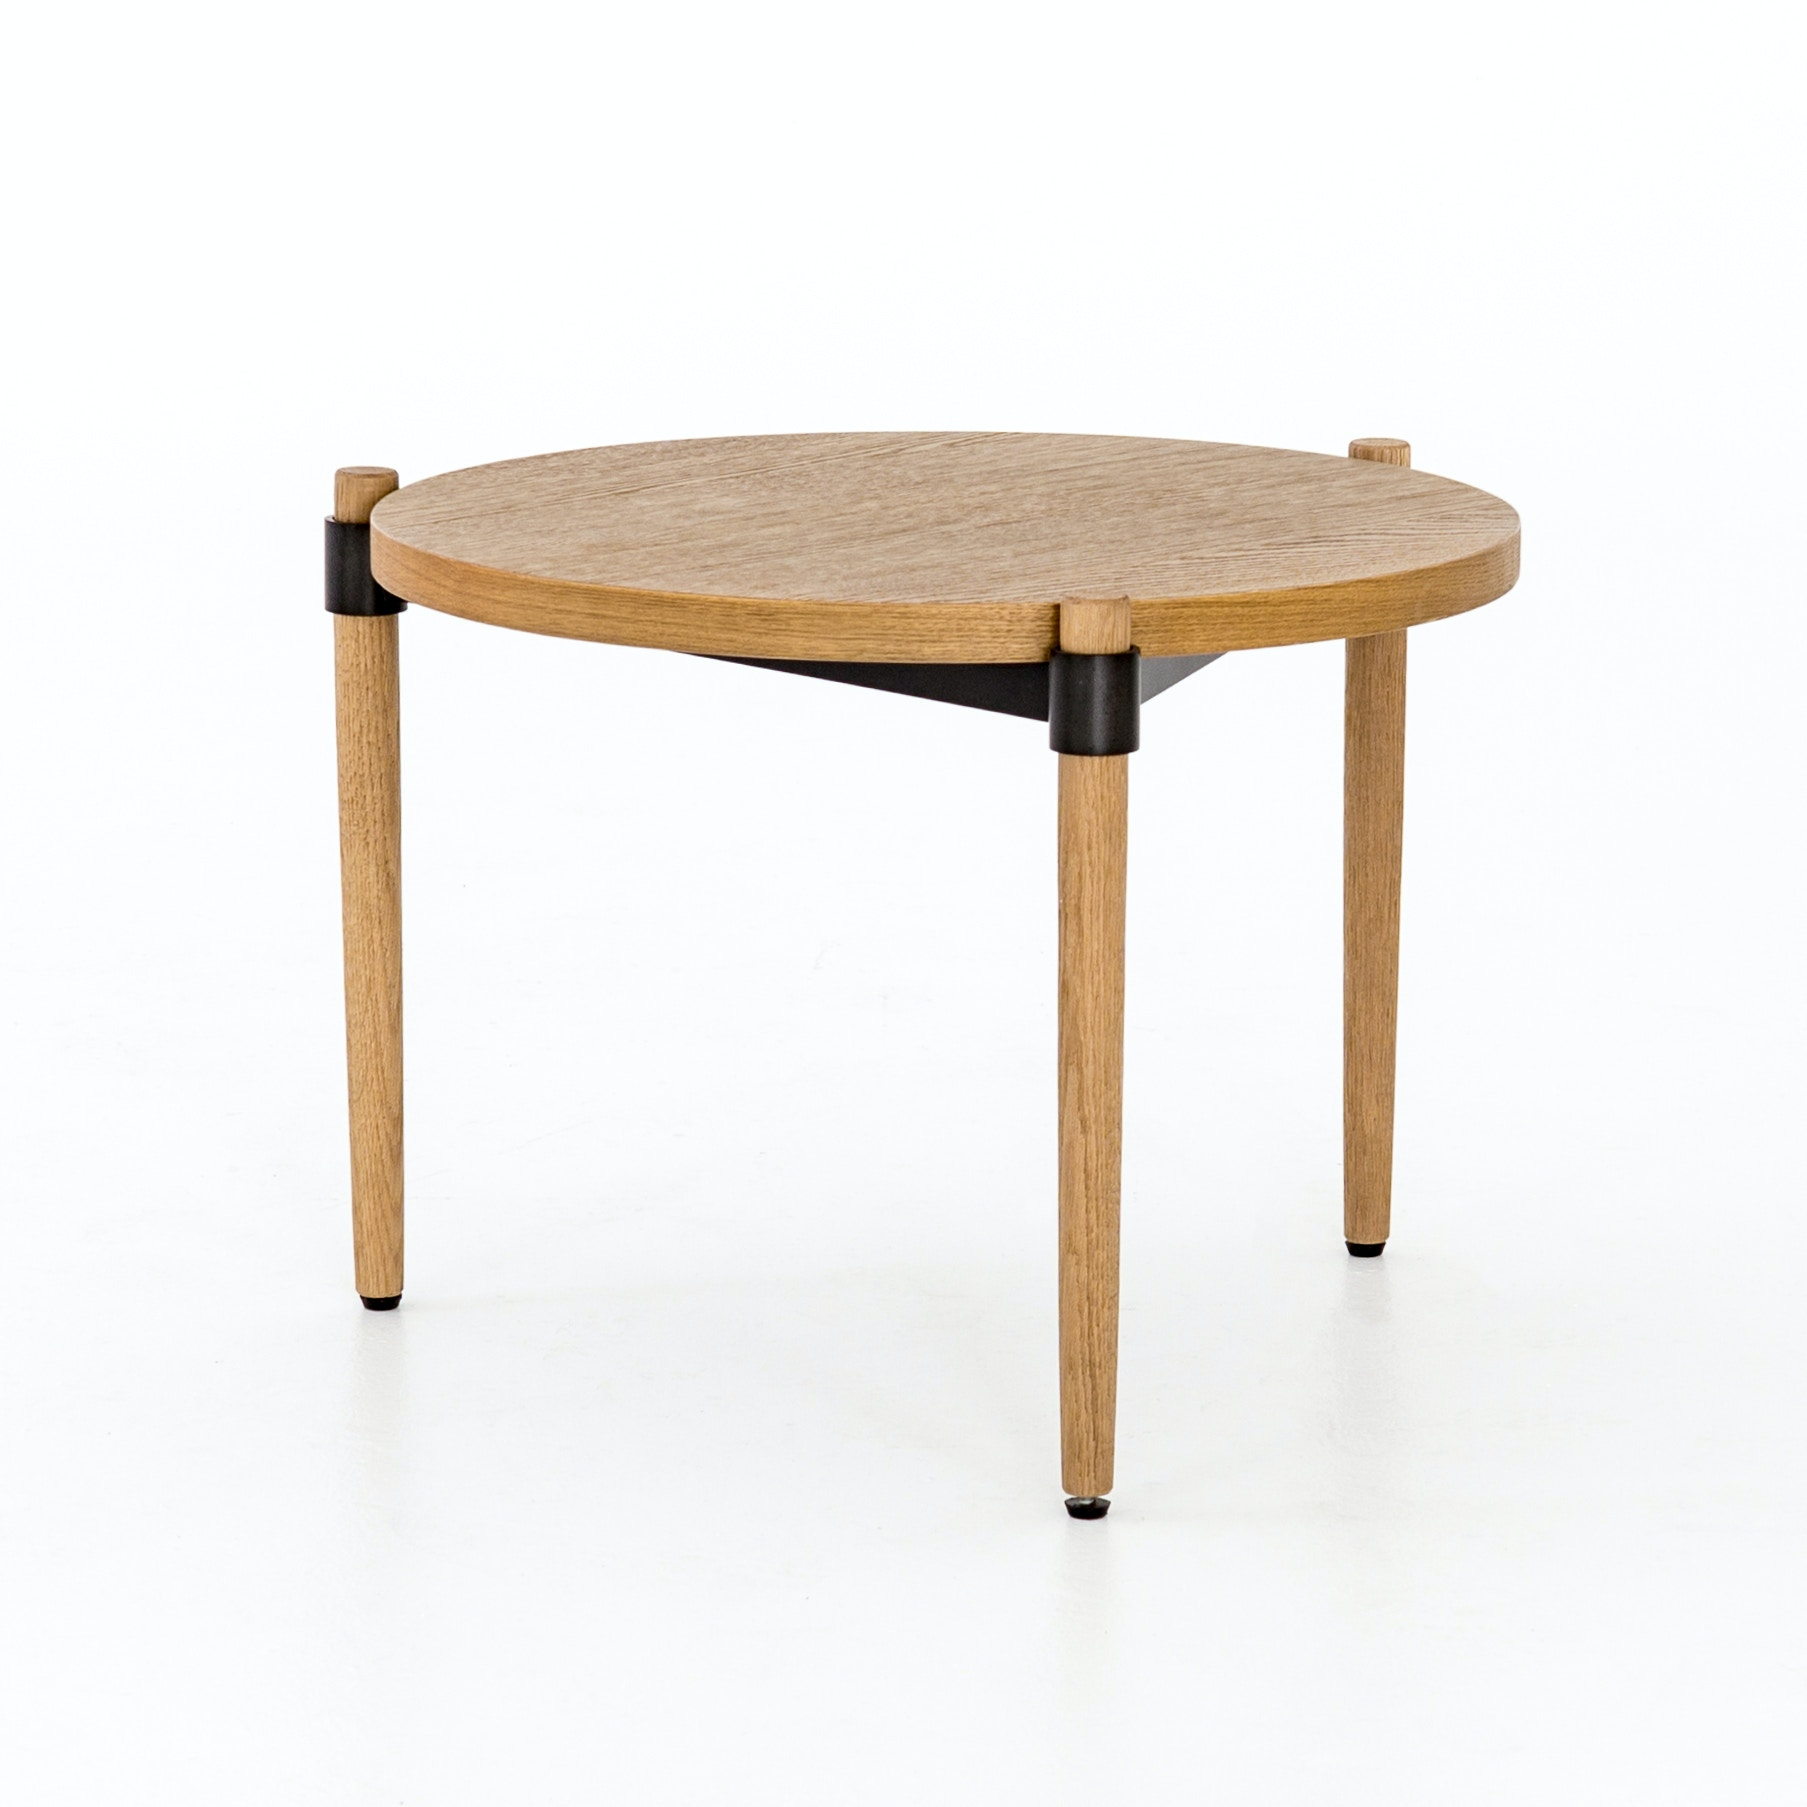 Fourhands Holmes Cocktail Table CF CIRD 442